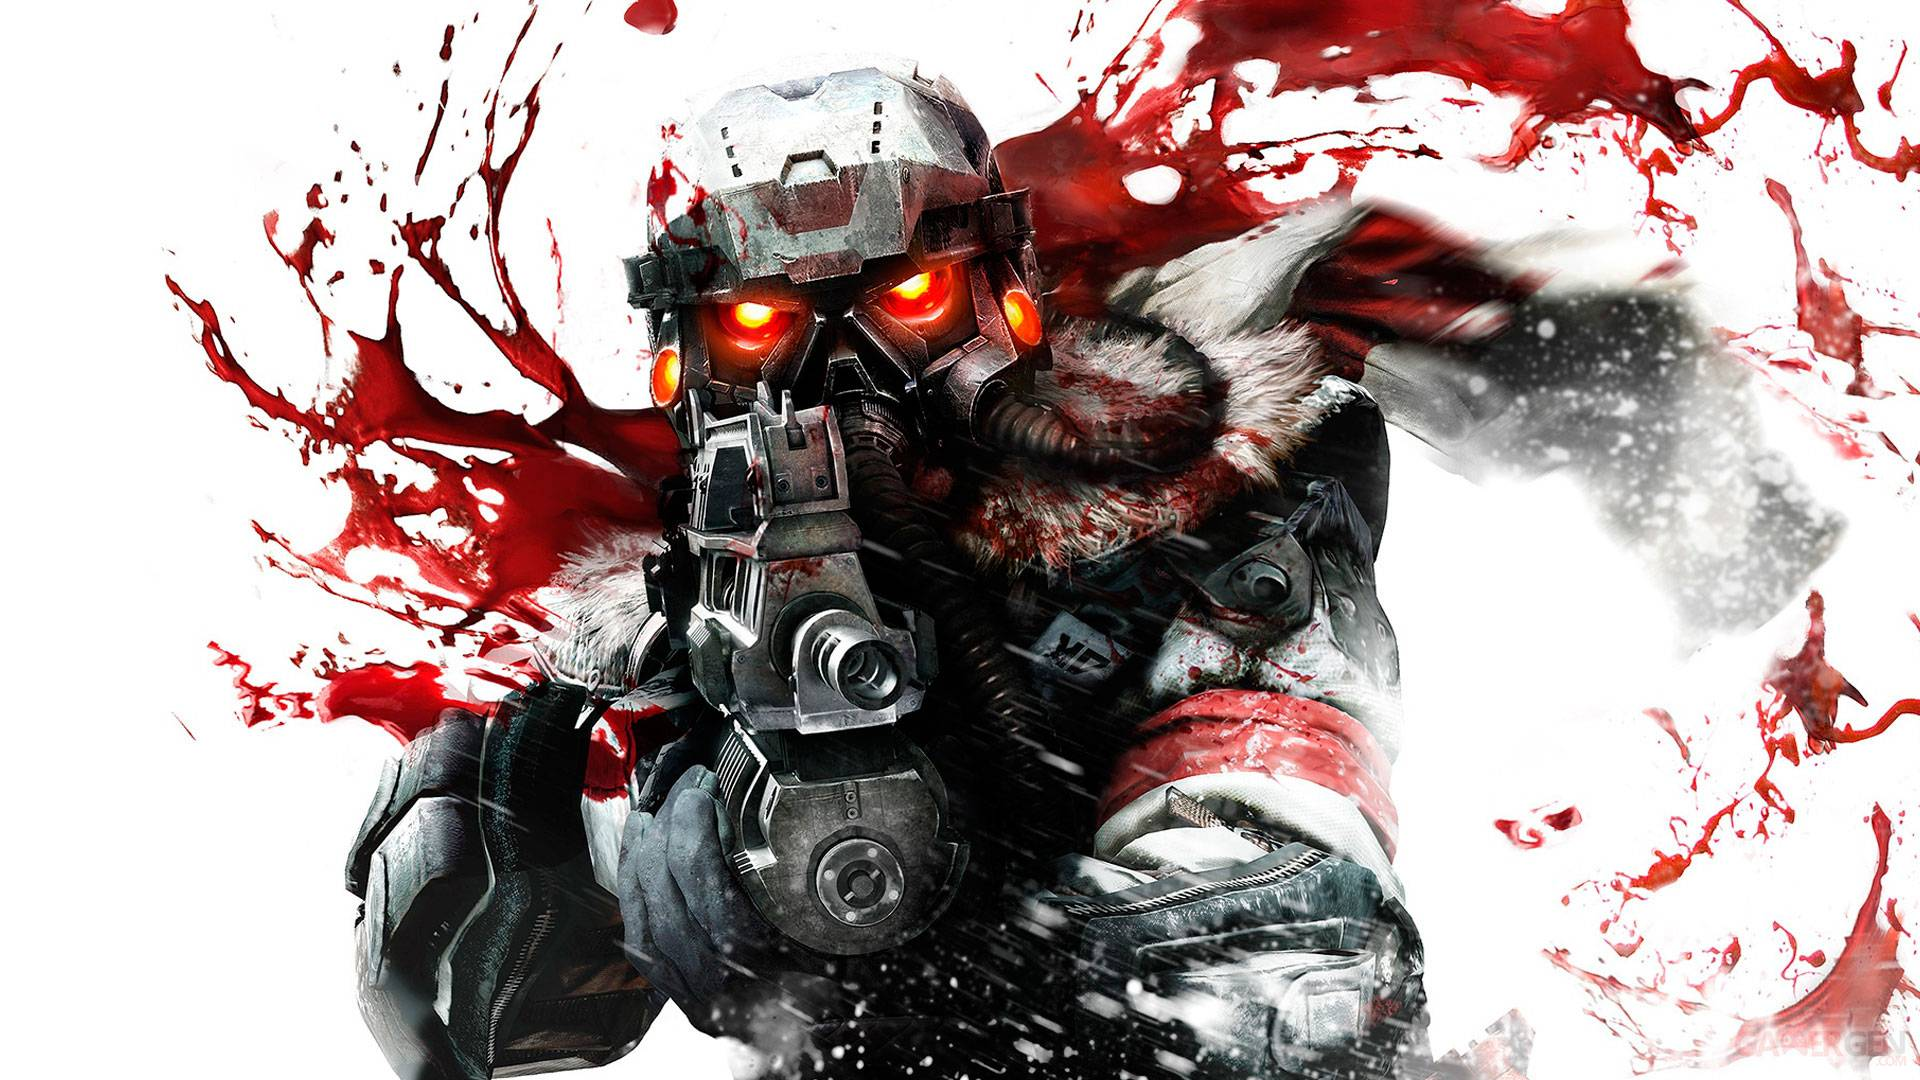 killzone-3-fonds-ecran-wallpapers-1080p-002